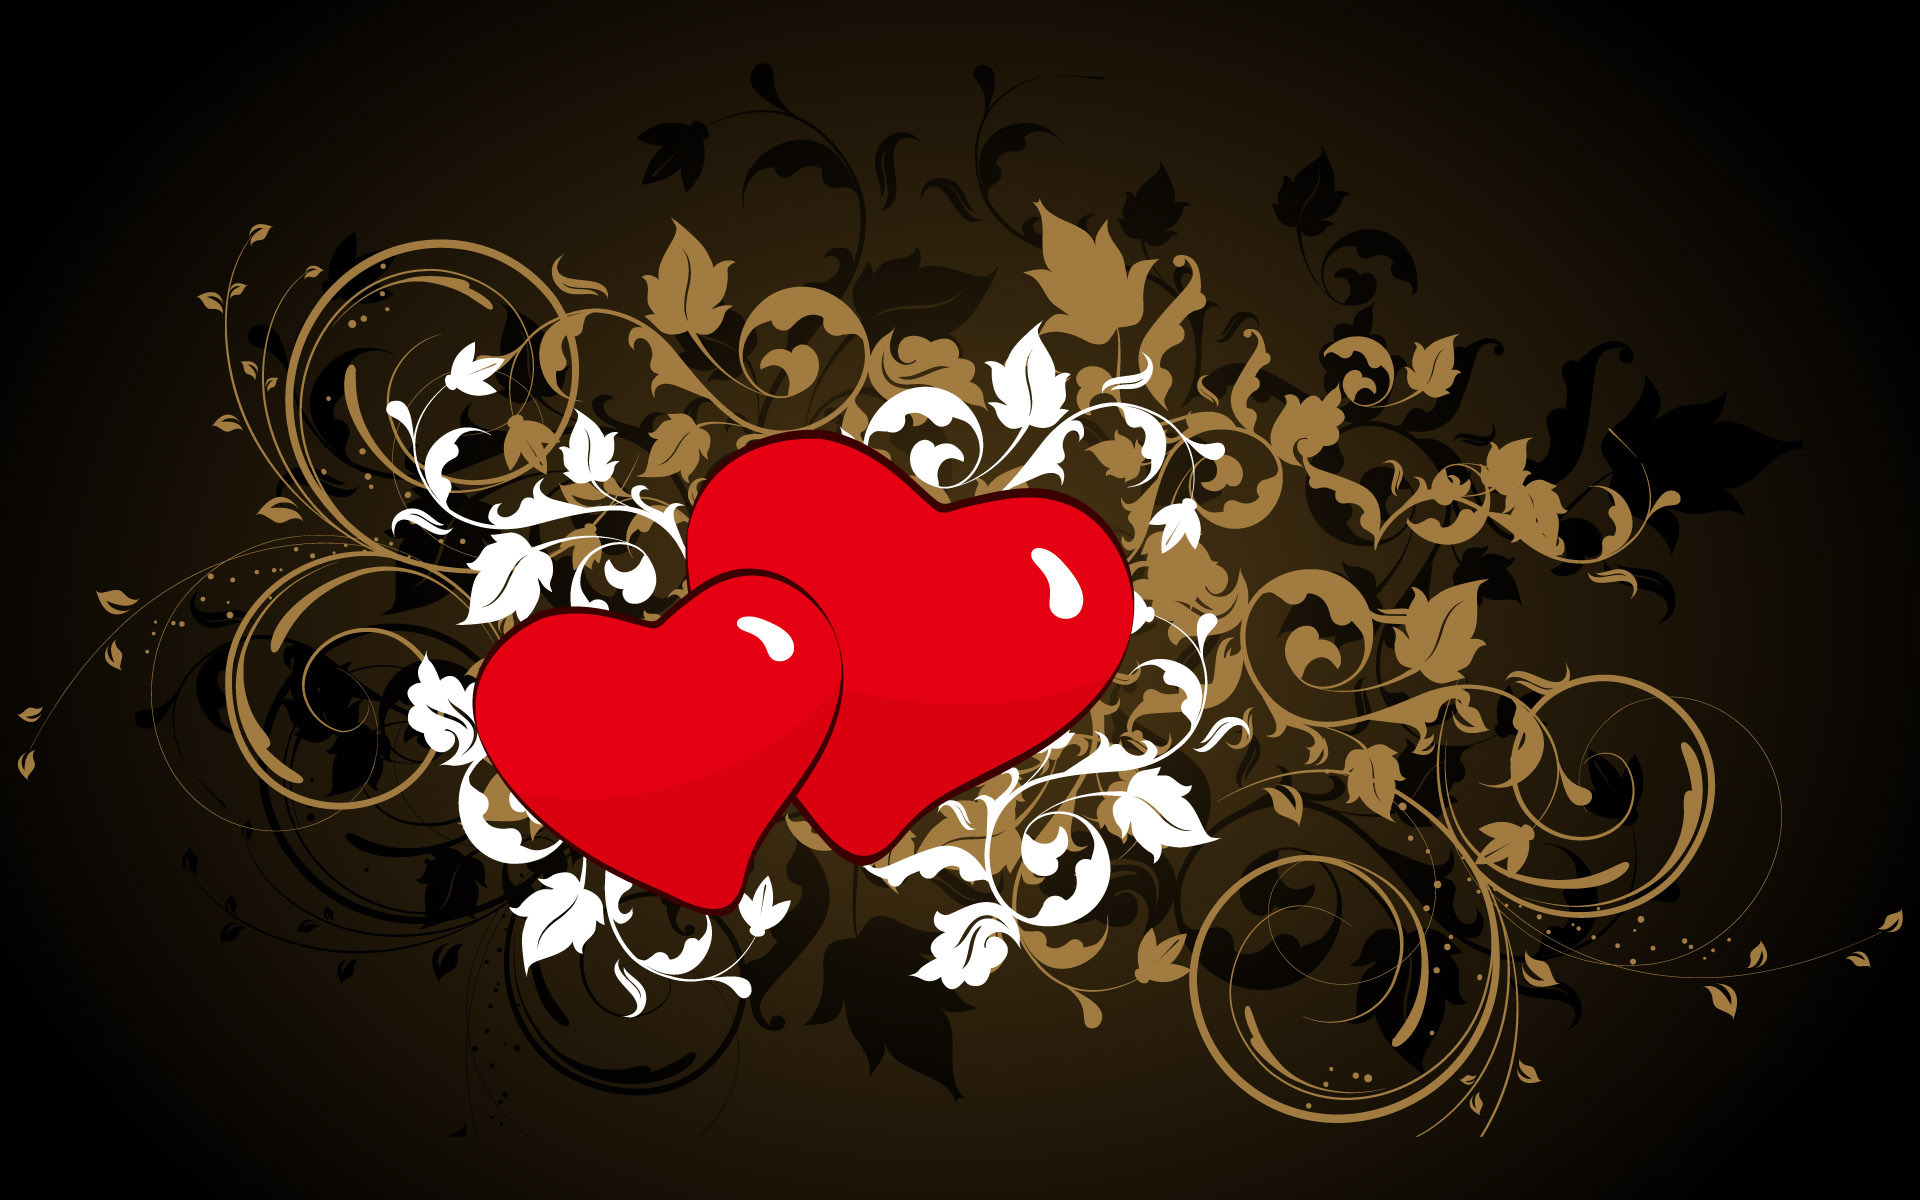 Love Wallpaper Big Size Hd : Love Wallpaper - Love Wallpaper (4187474) - Fanpop